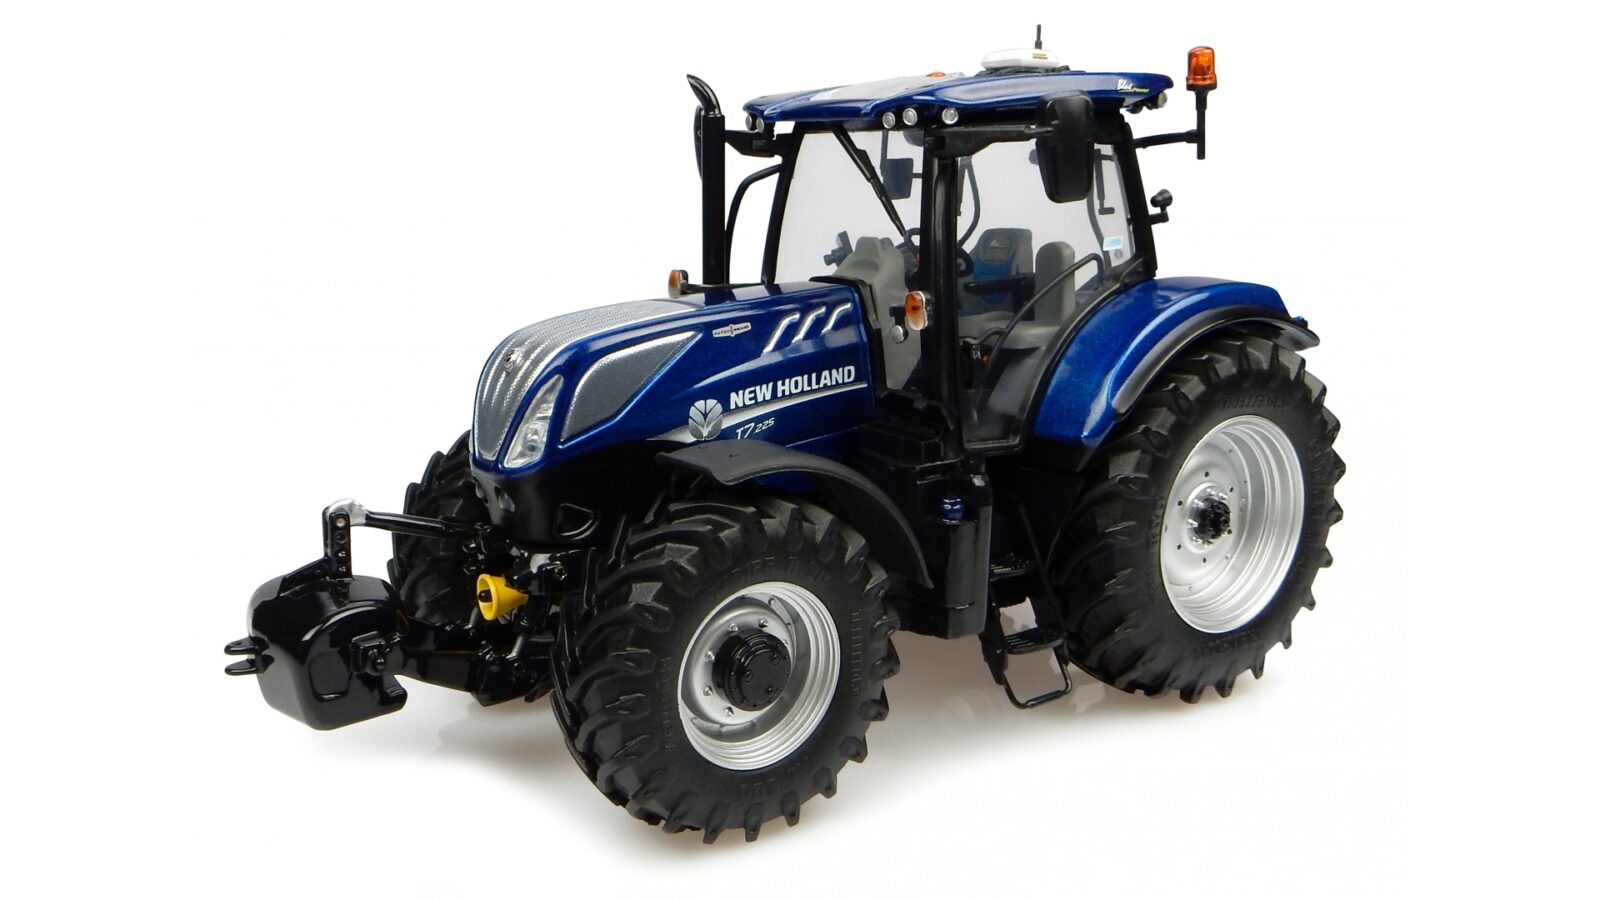 New Holland Tractor Specials : Kavanaghs toys universal hobbies new holland t blue